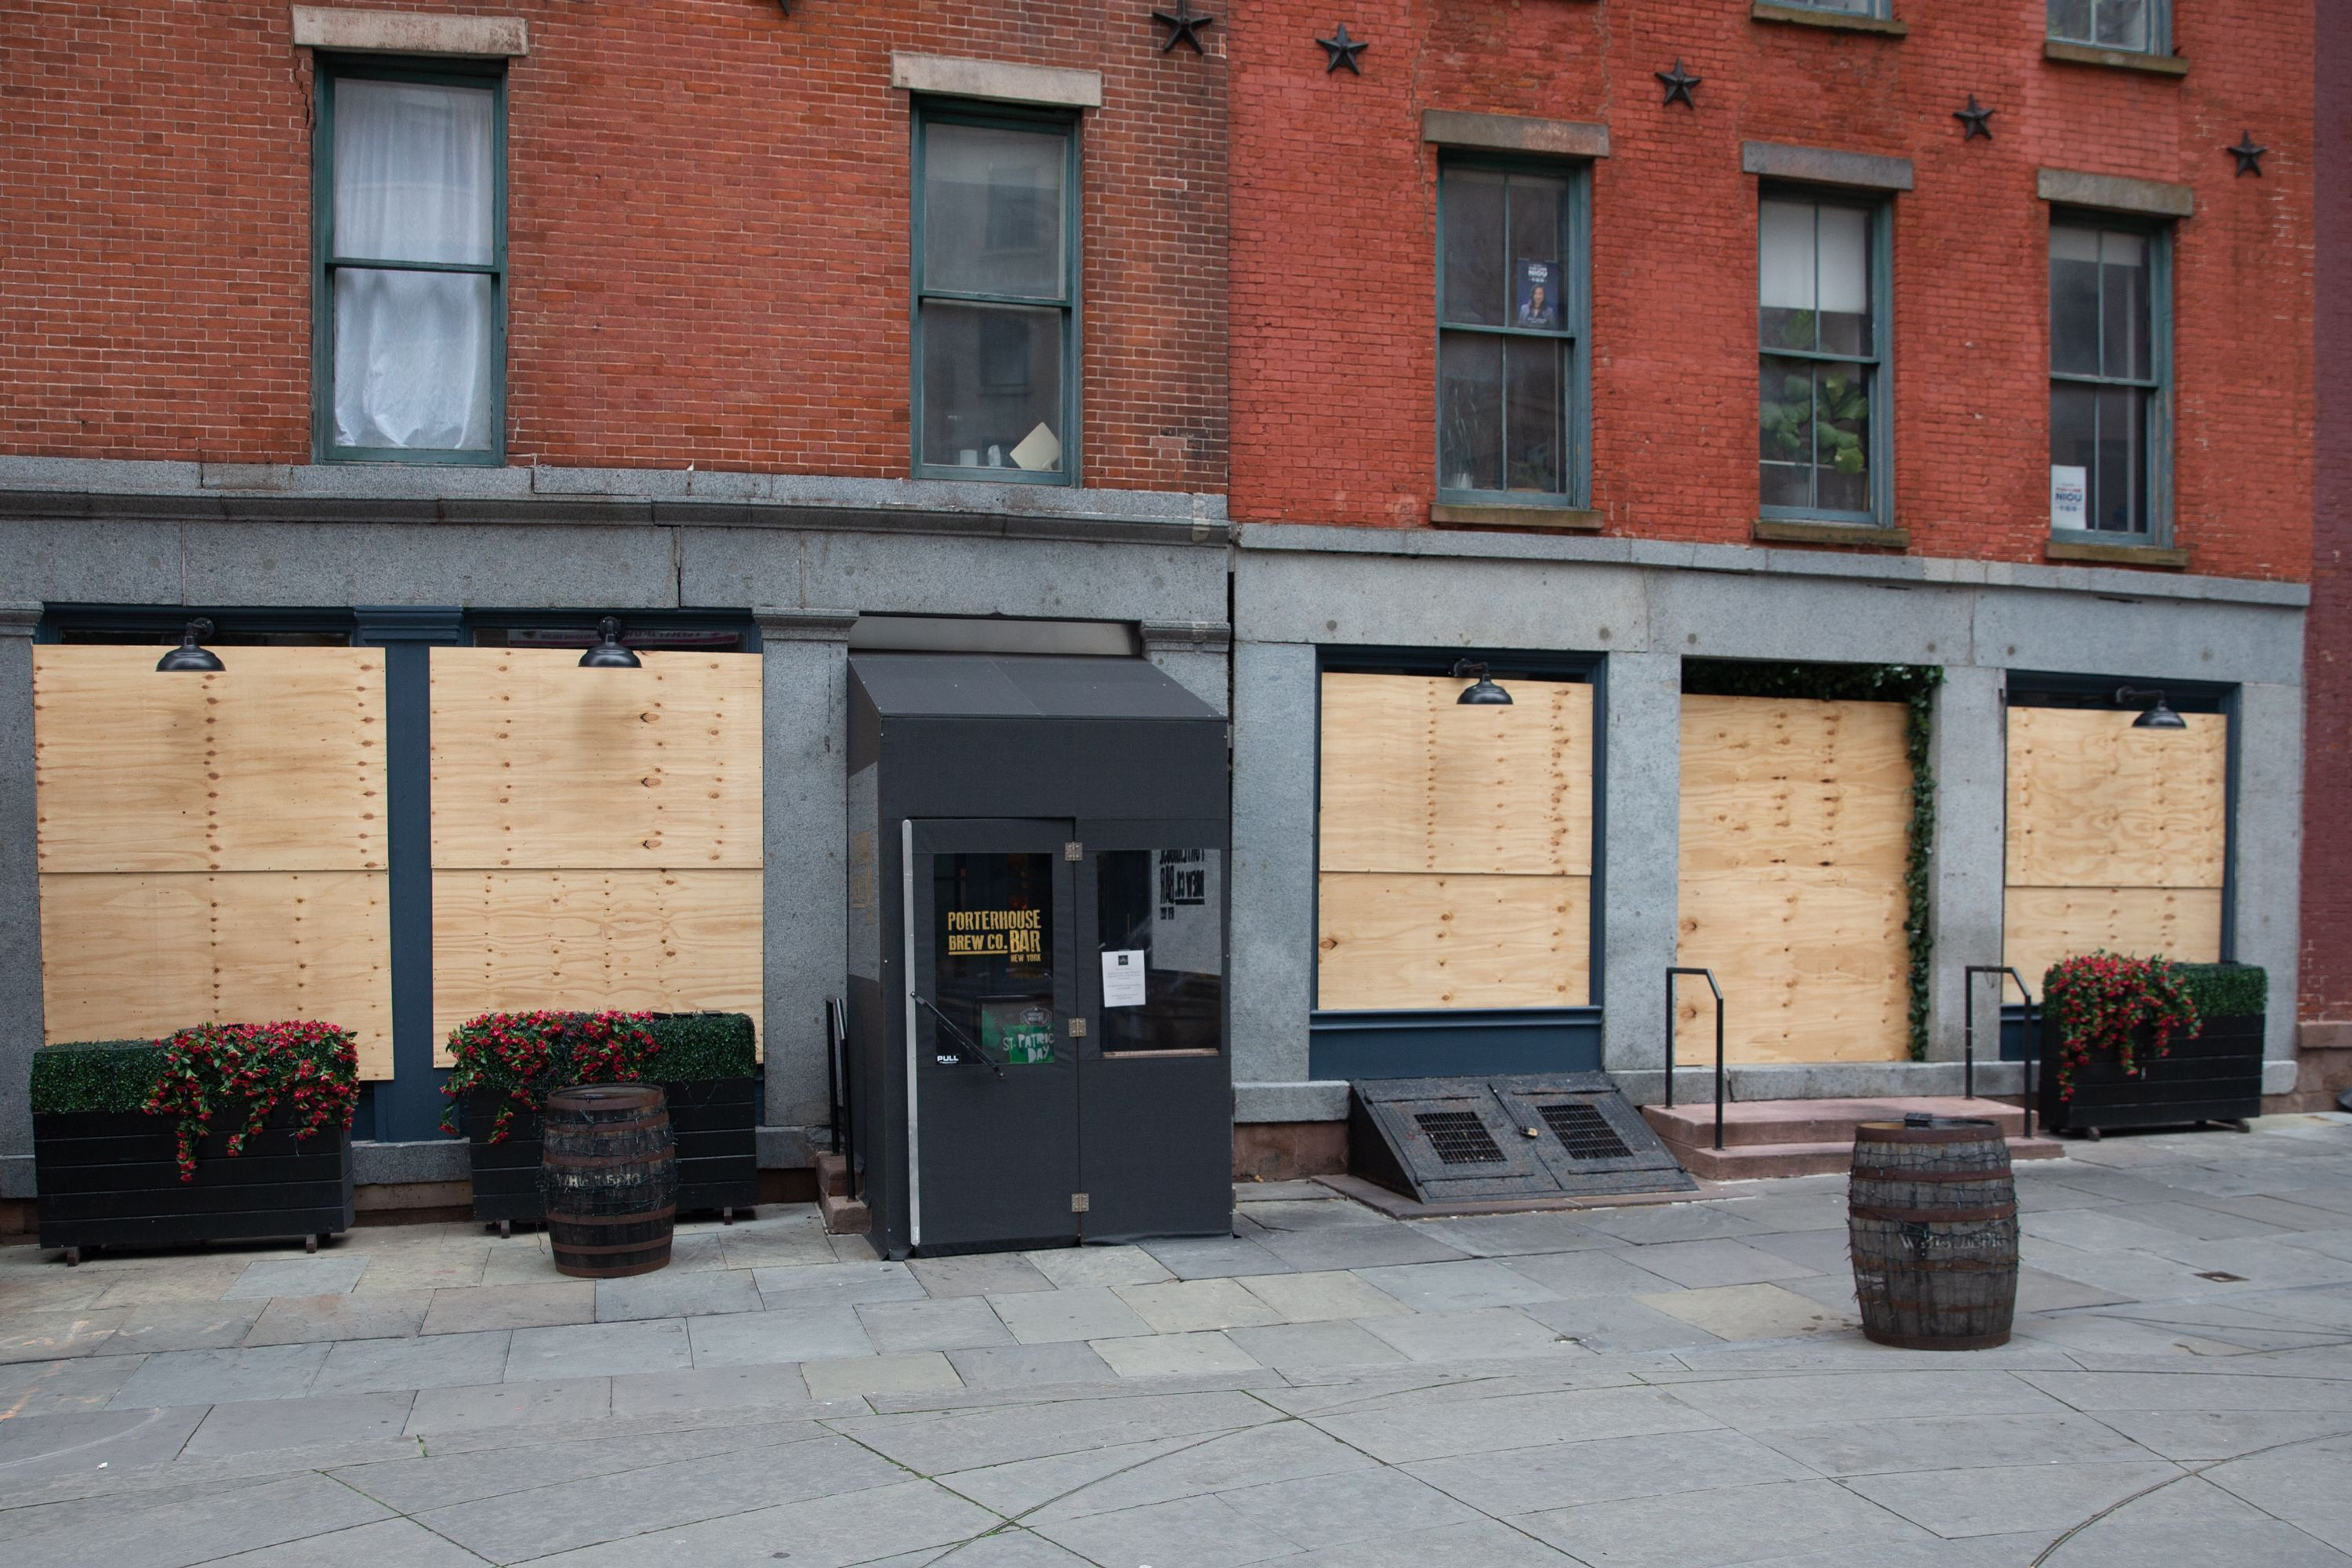 Porterhouse Brew Co. in the Financial District was boarded up during the coronavirus epidemic.